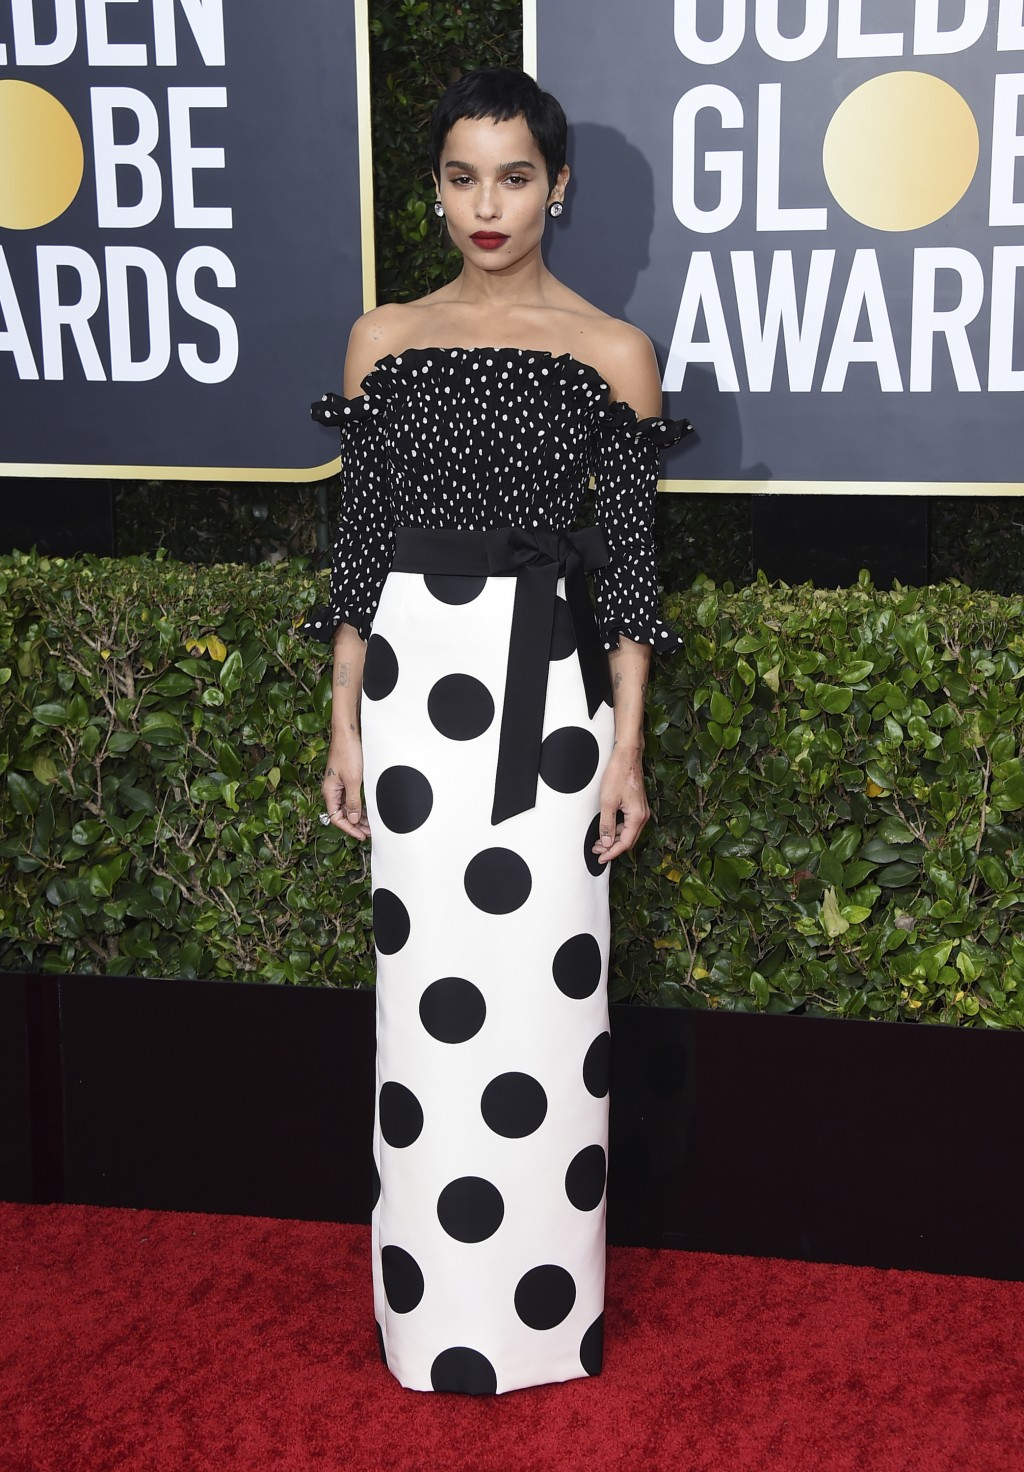 Zoe Kravitz arrives at the 77th annual Golden Globe Awards at the Beverly Hilton Hotel on Sunday, Jan. 5, 2020, in Beverly Hills, Calif. (Photo by Jor...